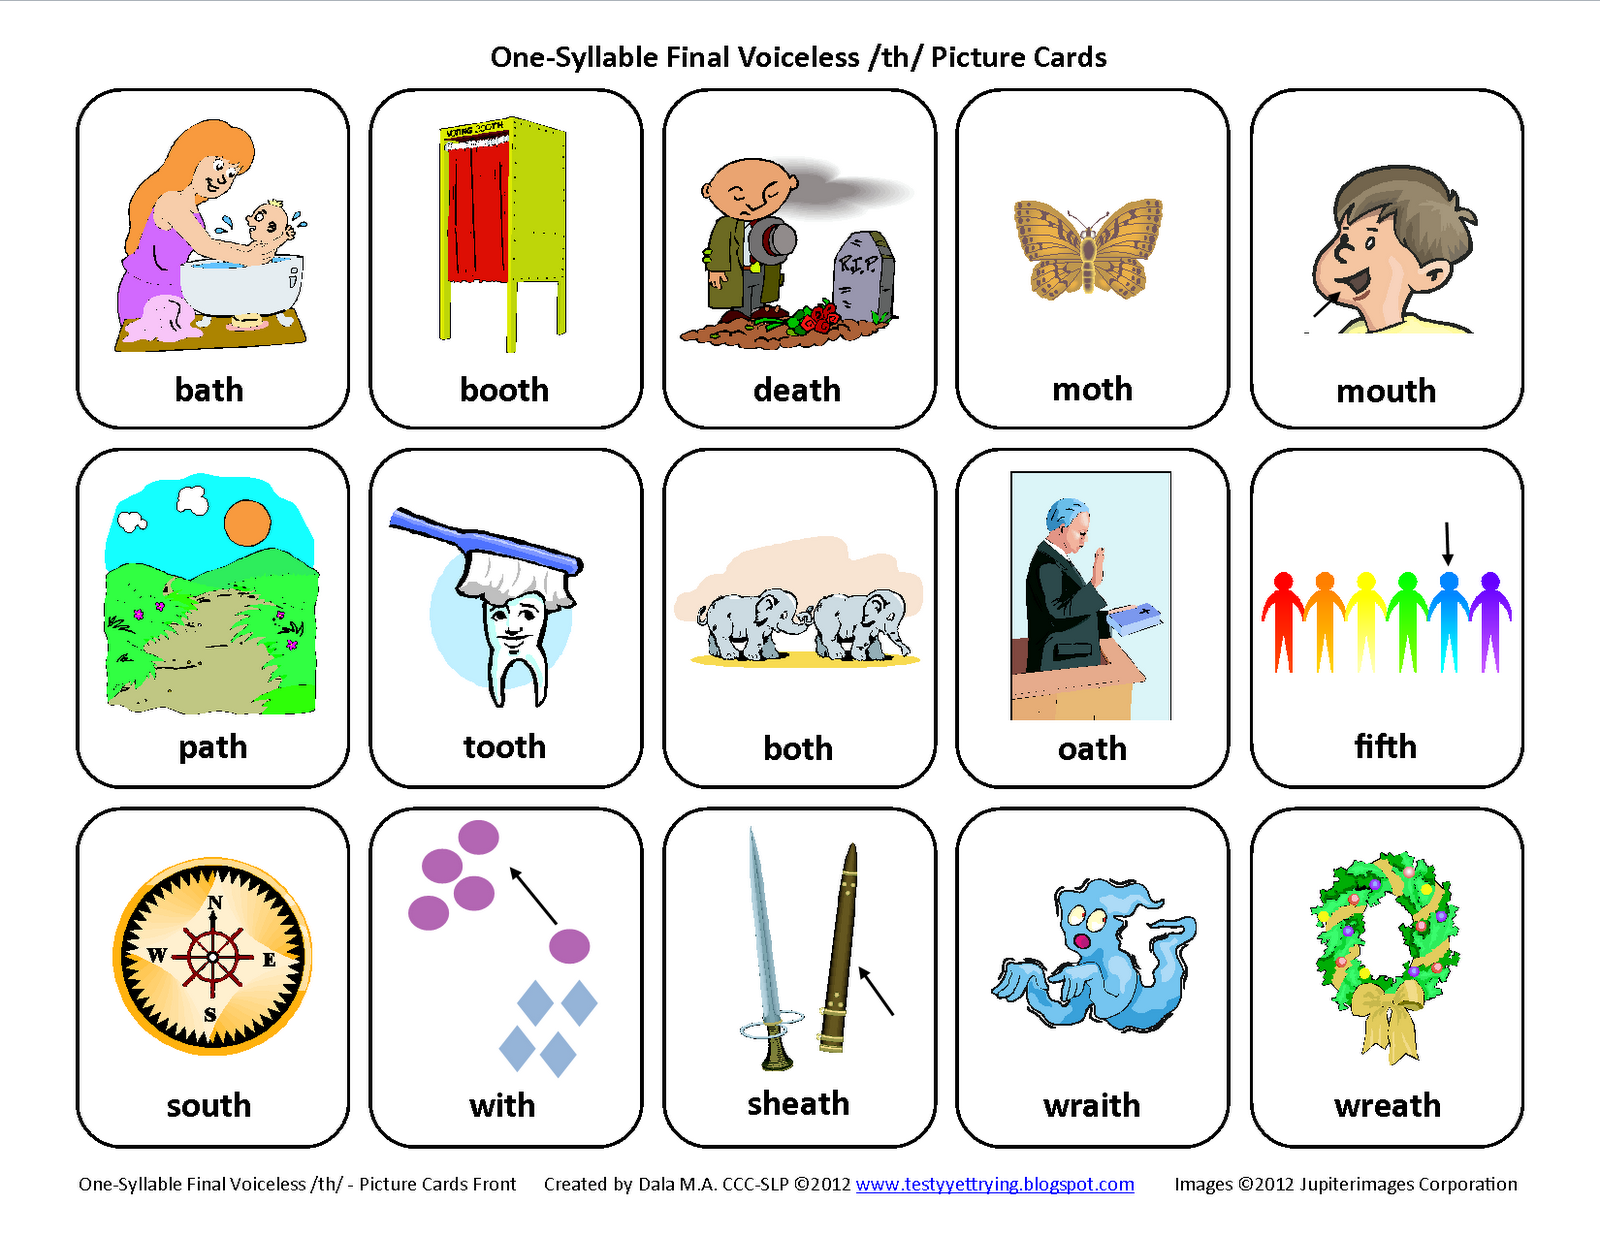 Worksheets Free Articulation Worksheets pin by pediastaff on articulation pinterest picture cards final th voiceless free speech therapy pinned please visit for all our pediatric pins